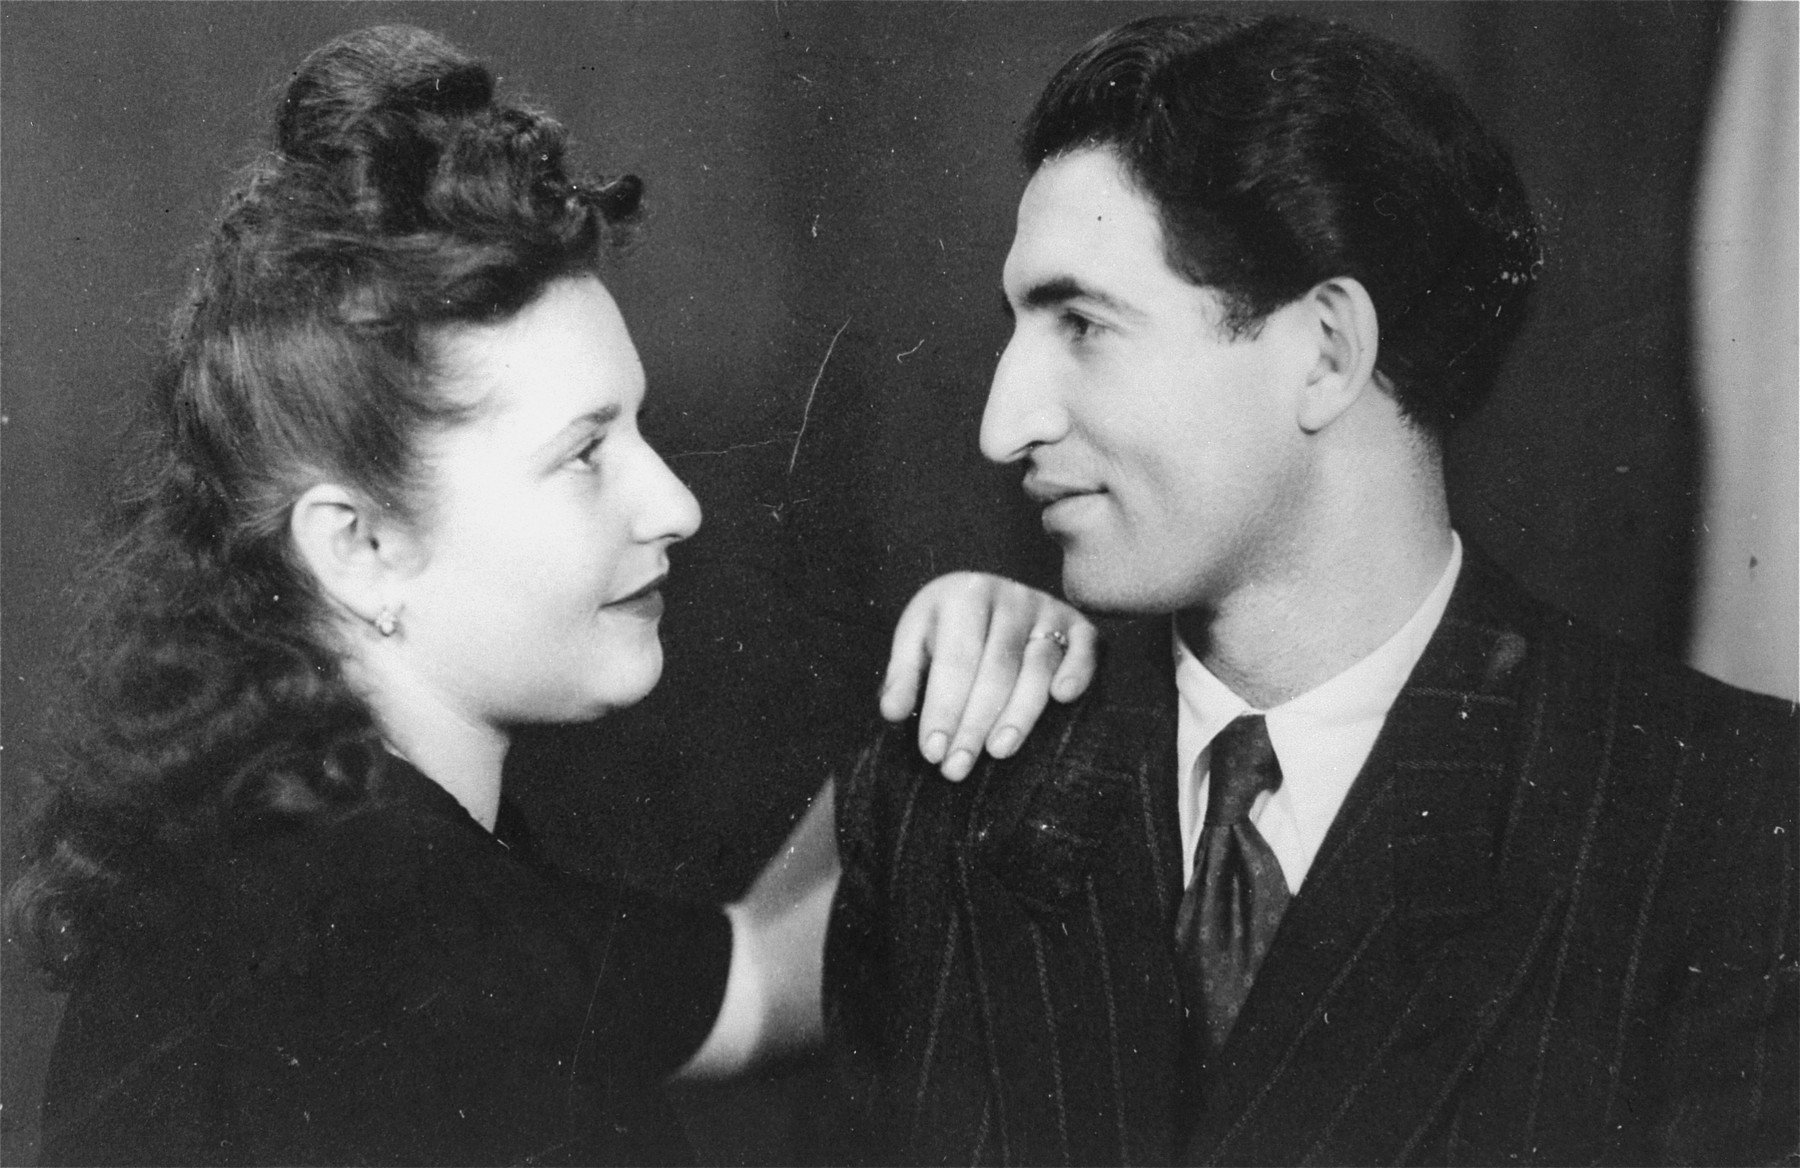 Studio portrait of Morris and Lusia (Glicklich) Breitbart, soon after their wedding at the Rosenheim displaced persons camp near Munich.